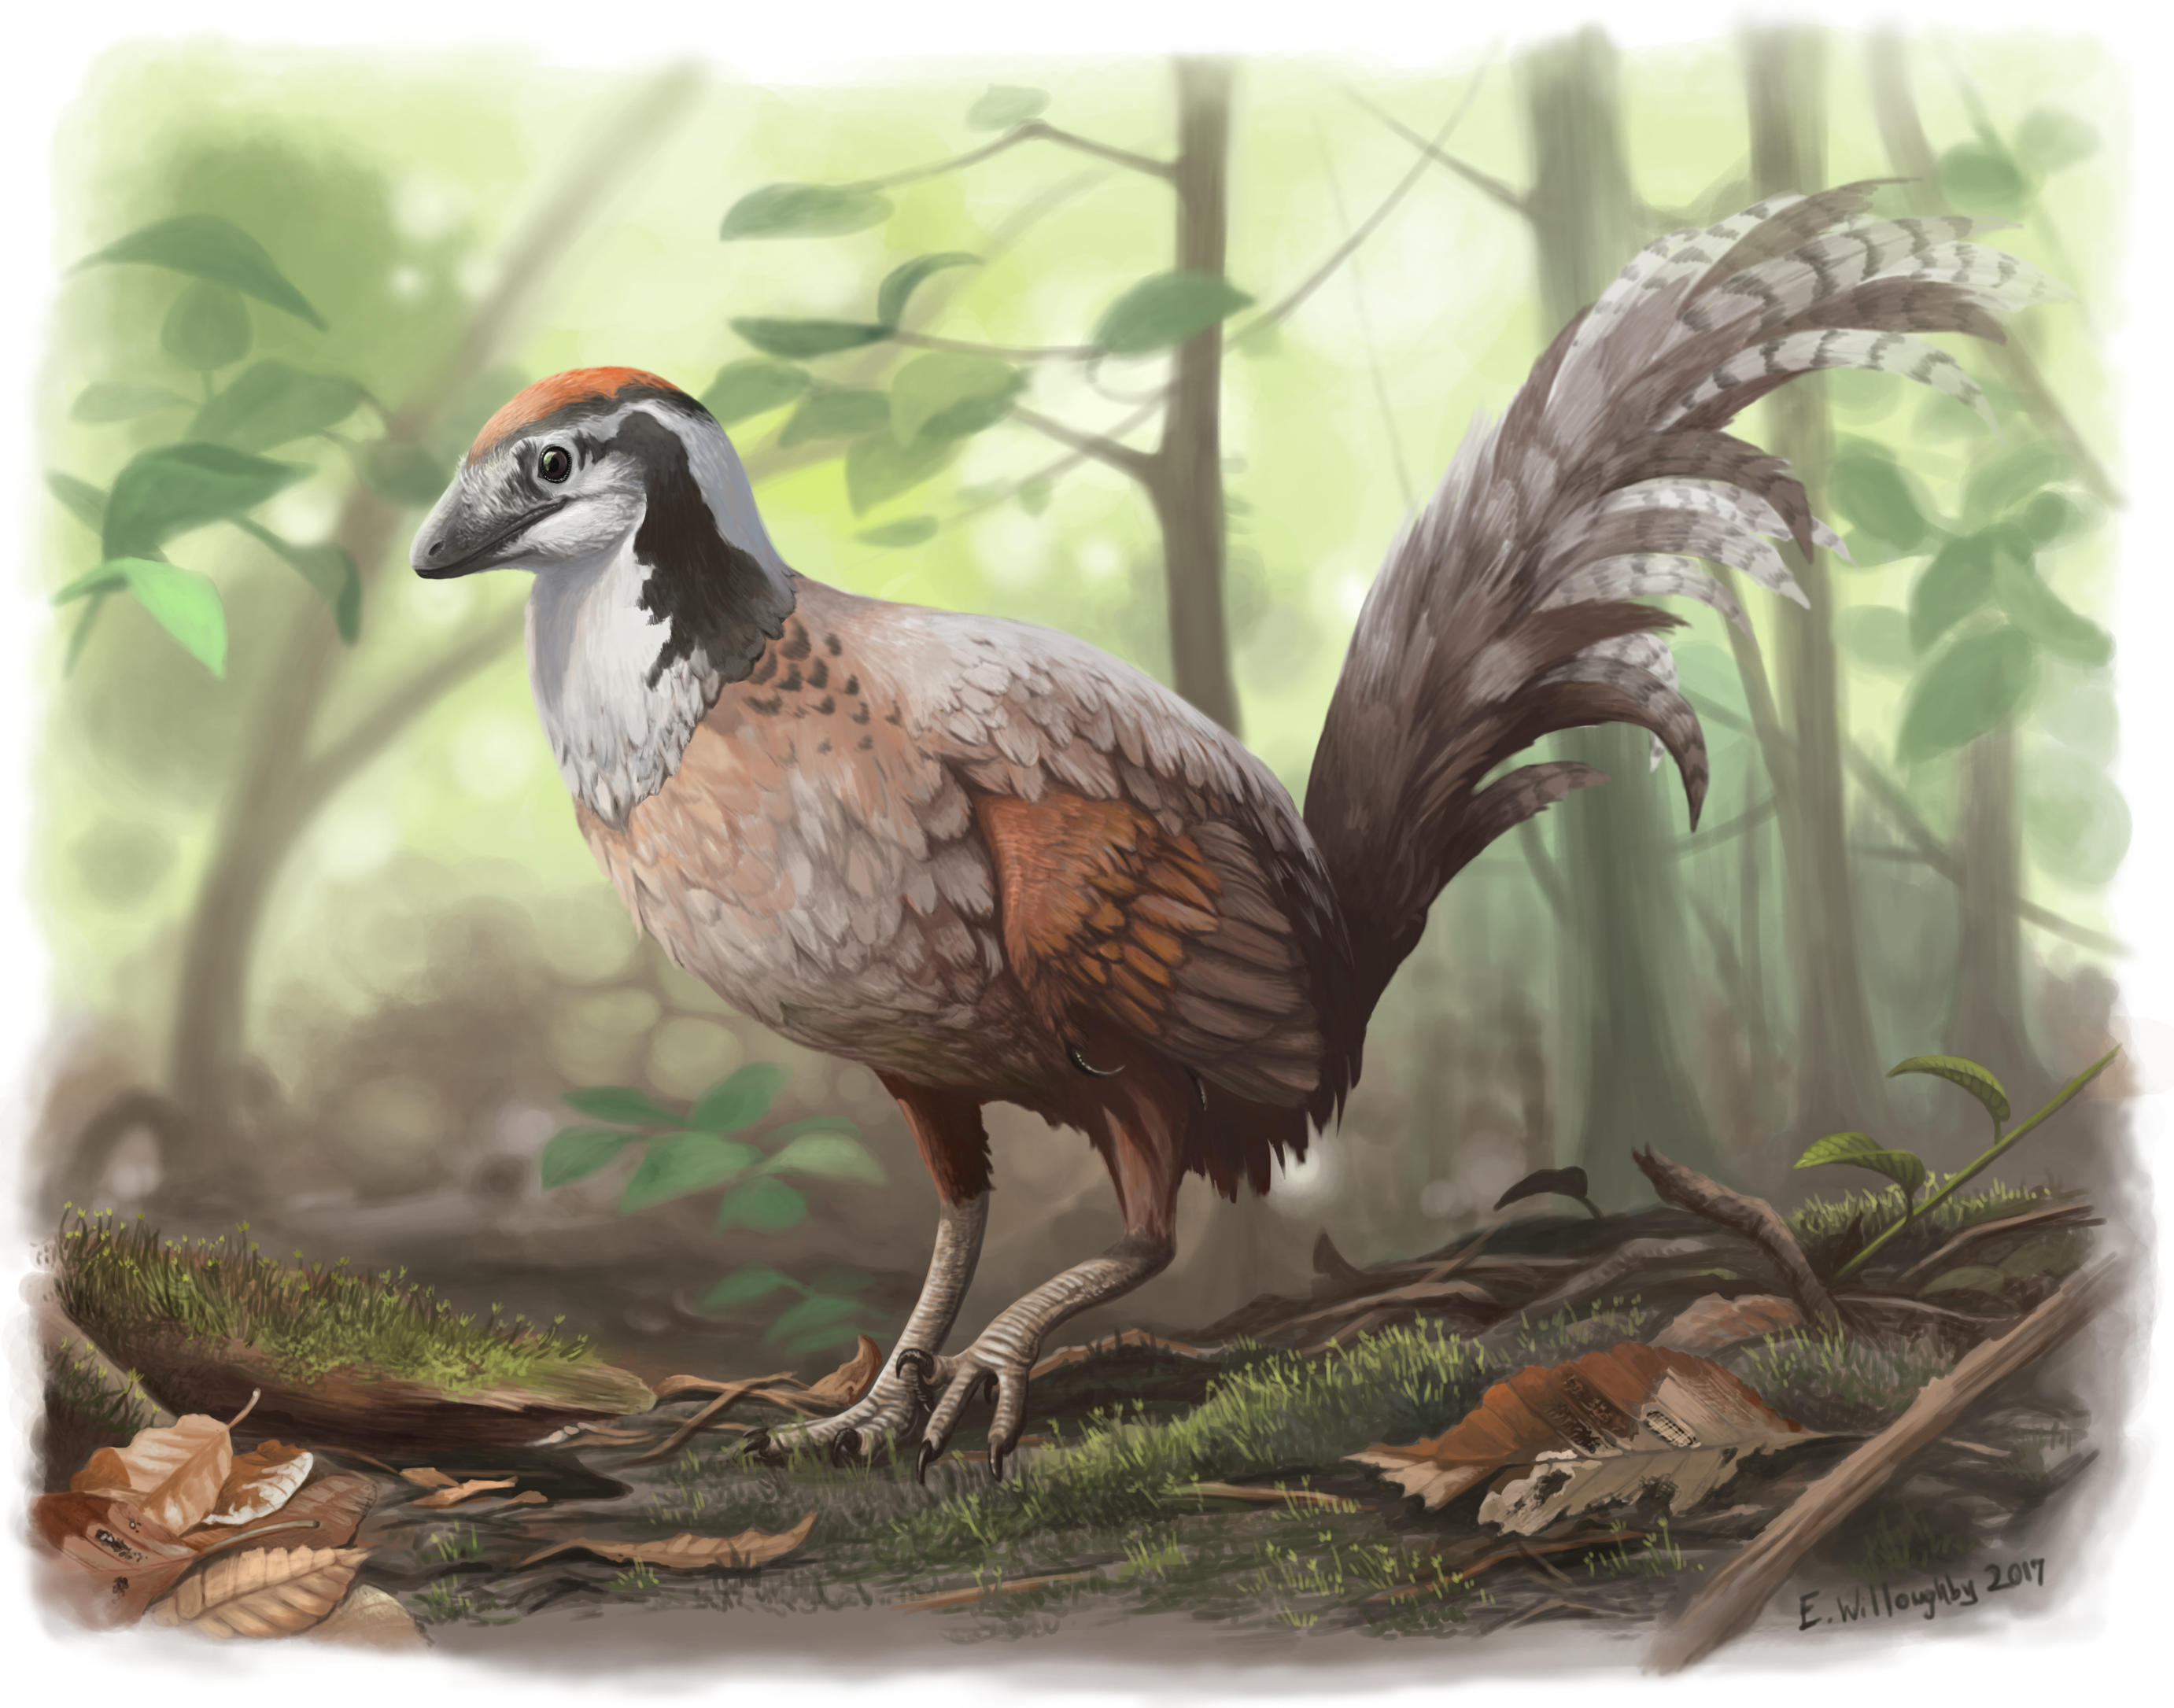 Jinfengopteryx Junglefowl by EWilloughby